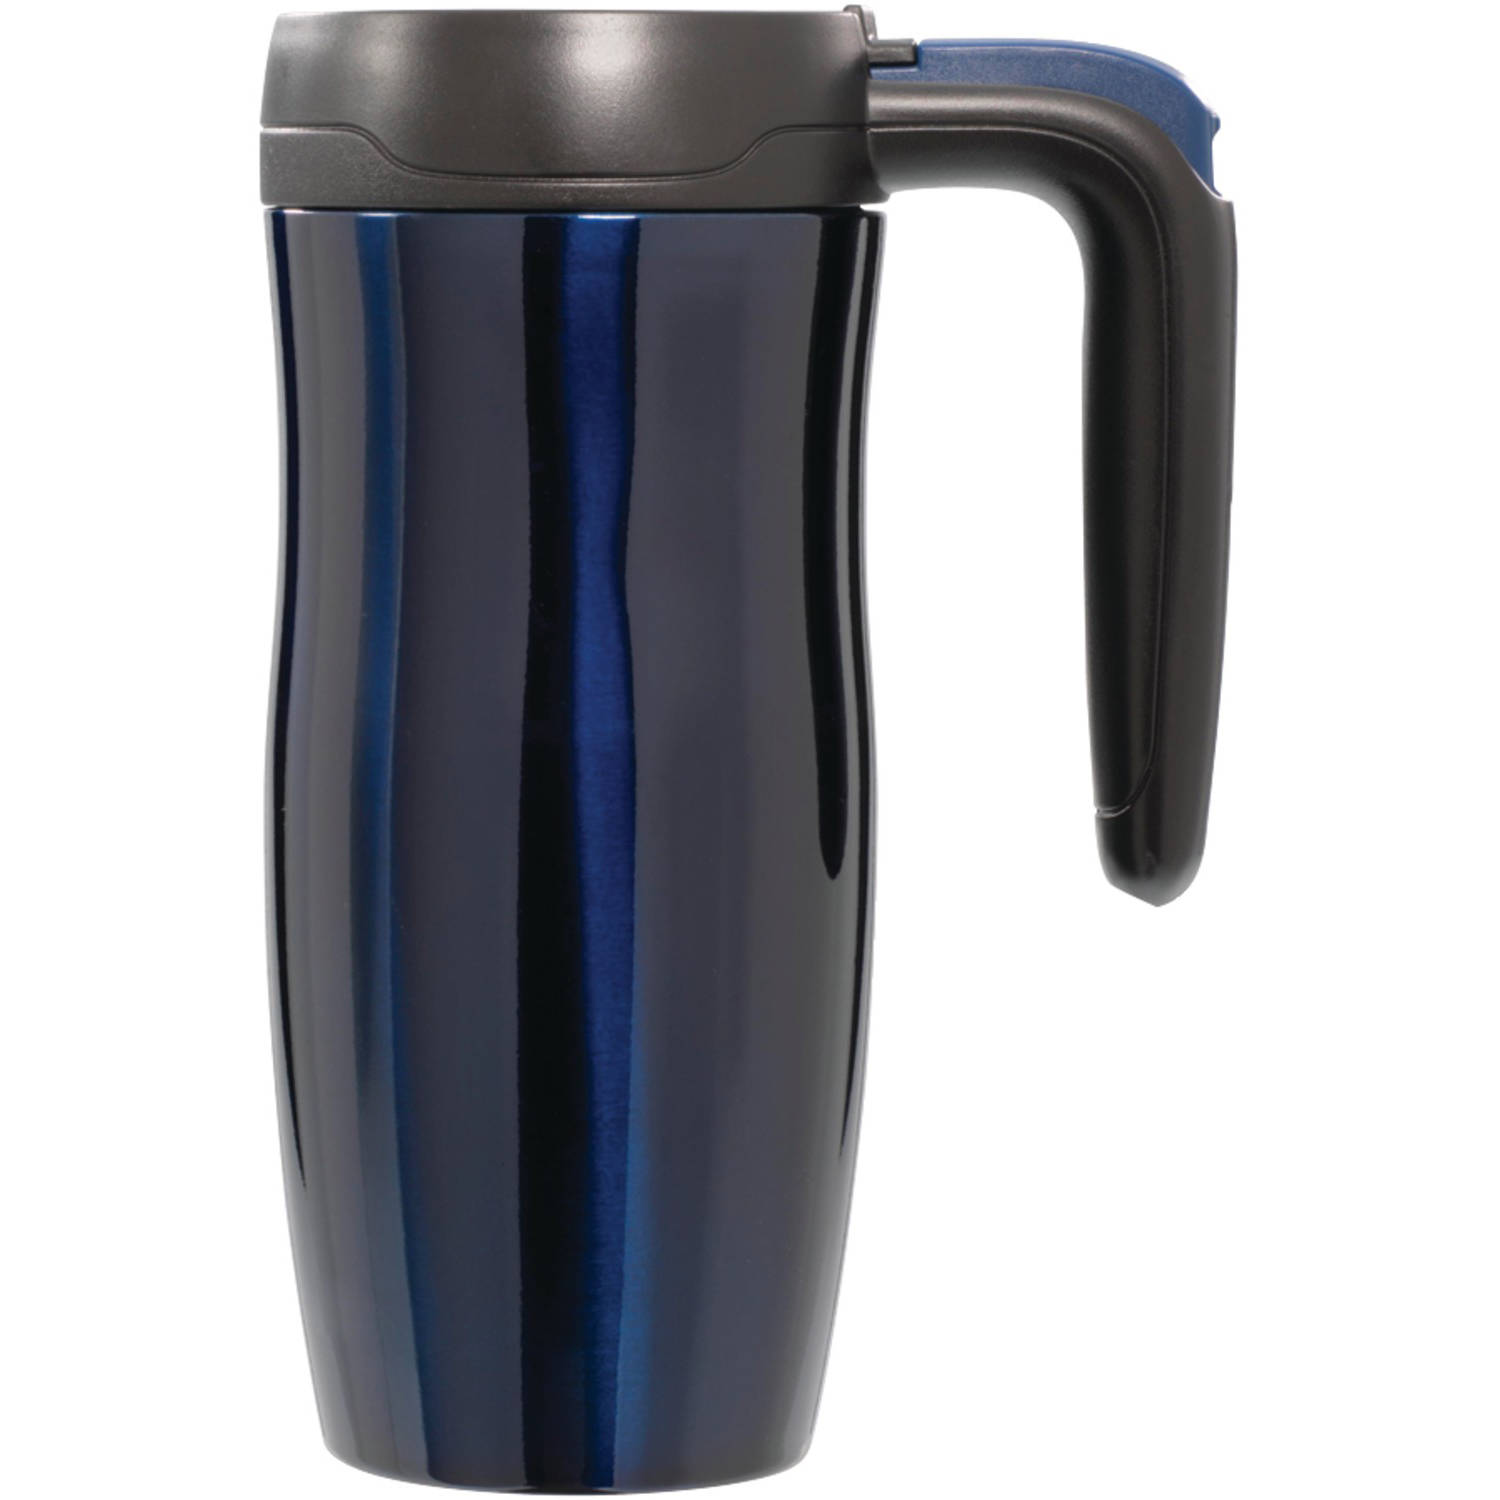 Contigo AUTOSEAL Randolph Vacuum-Insulated Handled Travel Mug with Easy-Clean Lid, 16 oz., Gunmetal